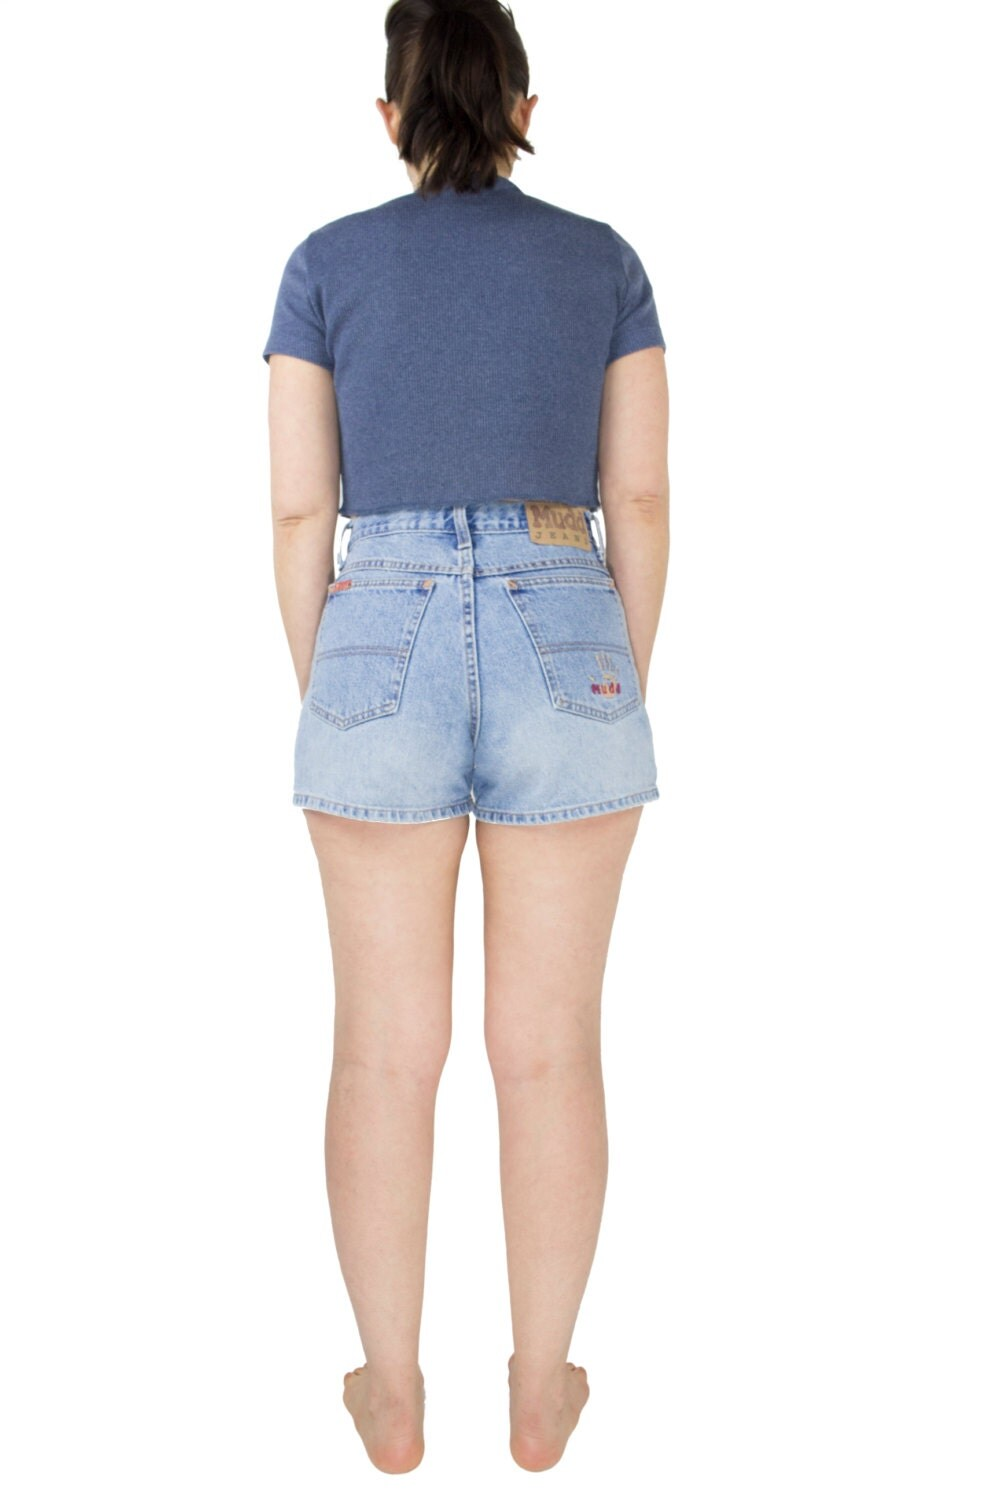 90s Vintage High Waist Denim Shorts | Light Wash Mudd Jean Shorts ...